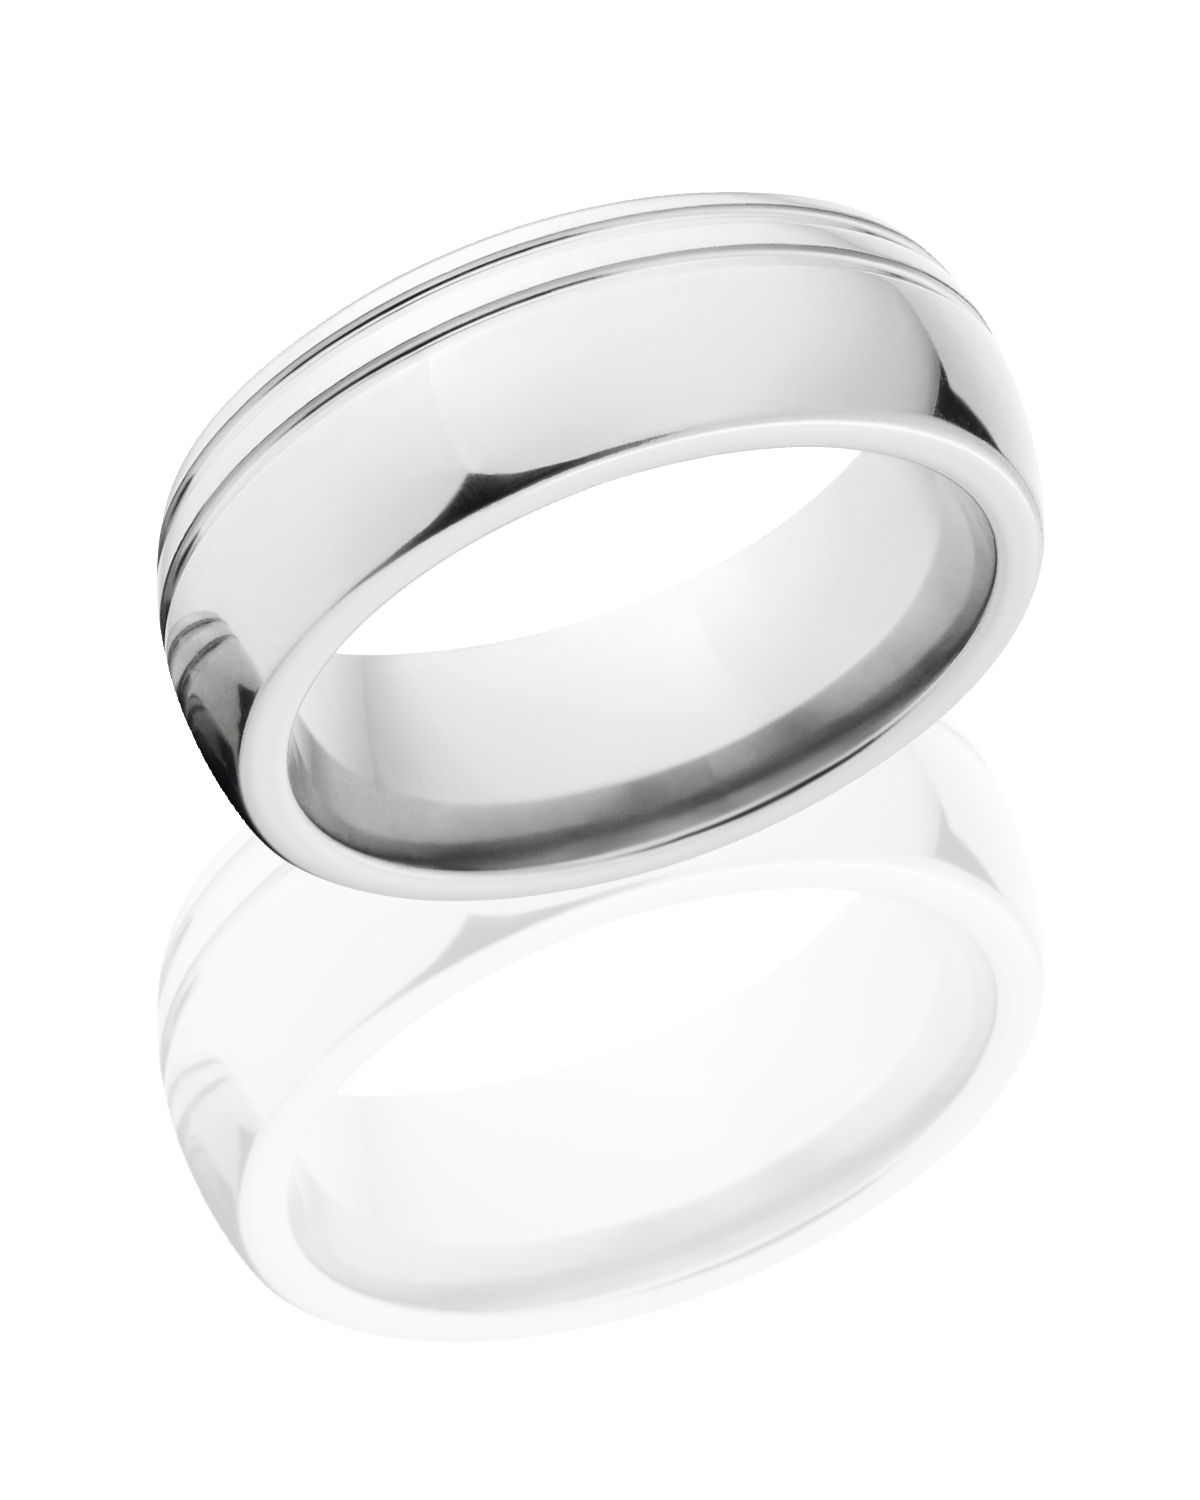 rings me wedding toughest platum durable justanother